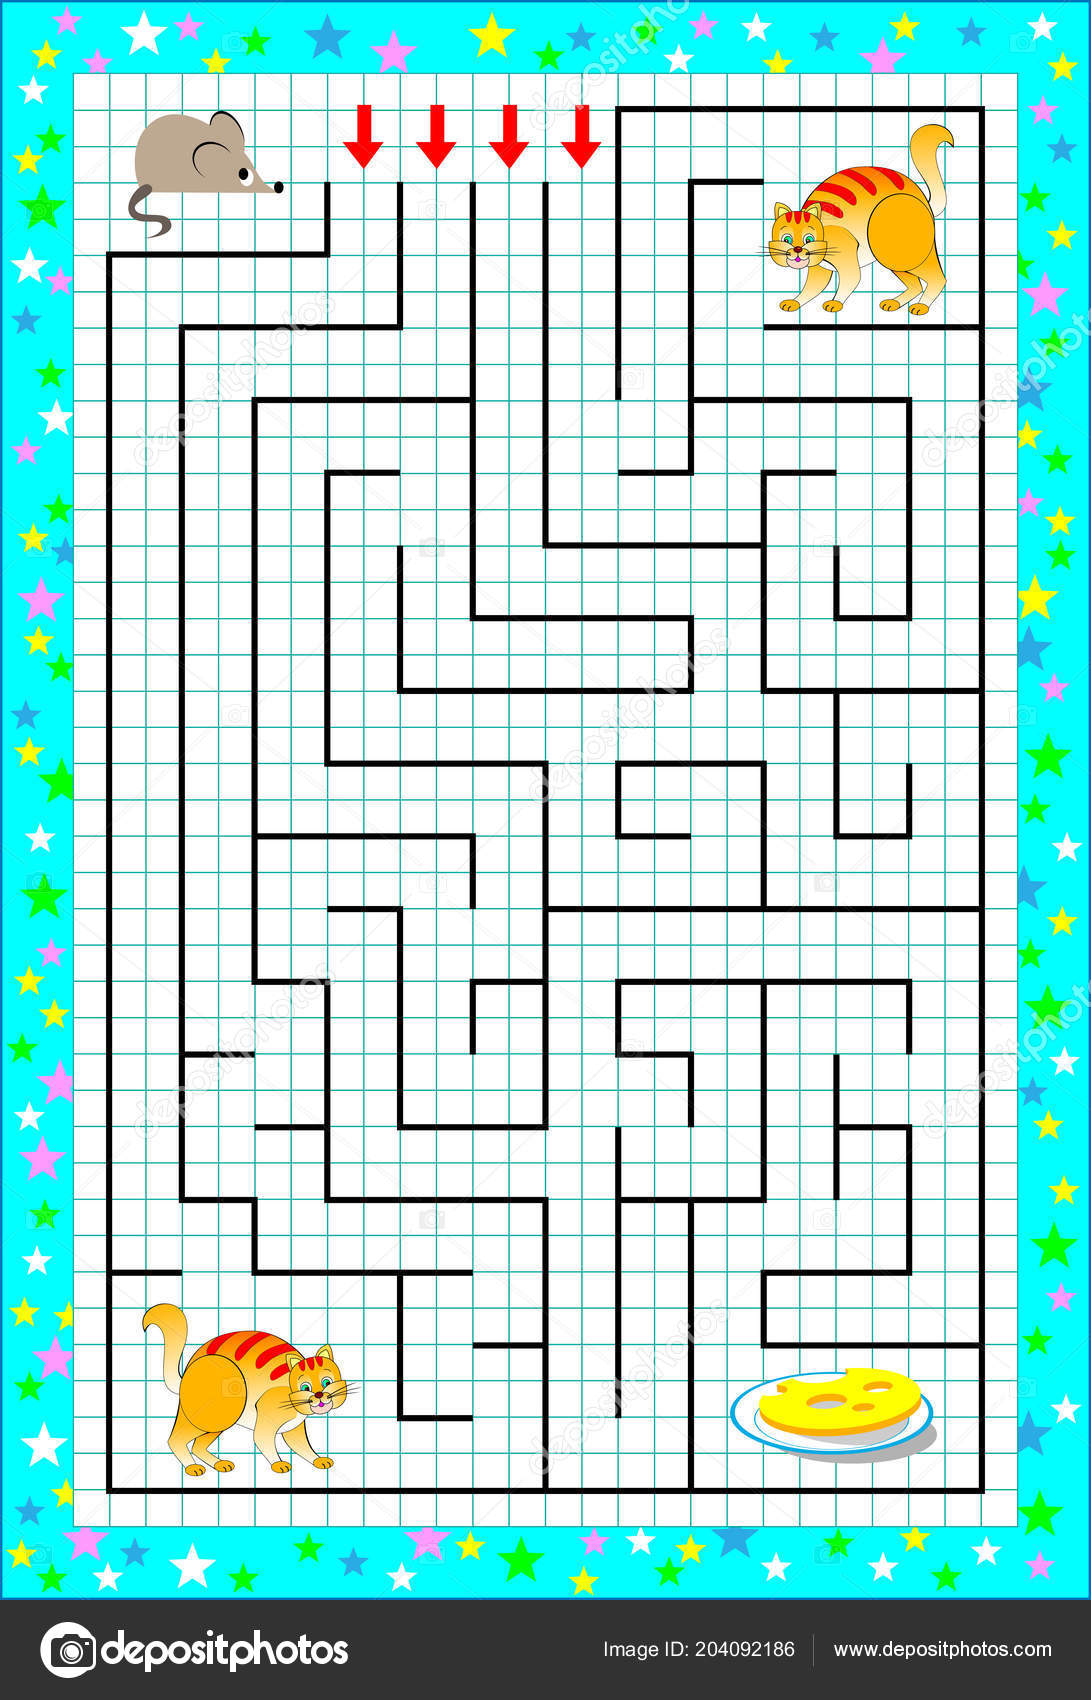 drawing games paper Logic Puzzle Game Labyrinth Children Square Paper Help Mouse